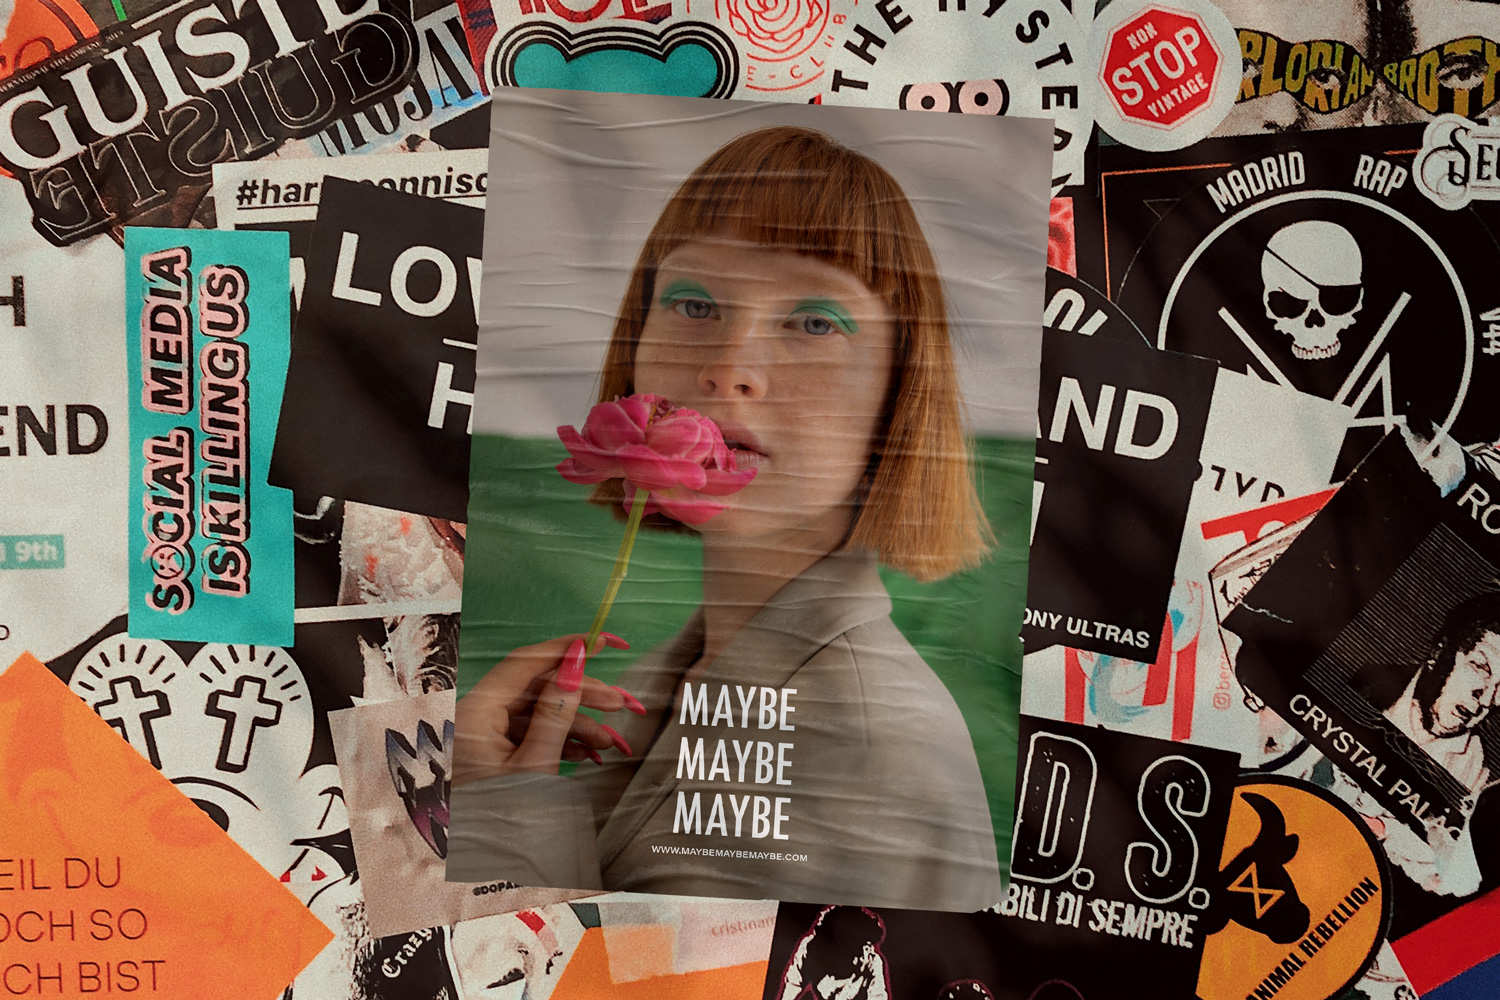 Maybe Maybe Maybe Single City Poster Mockup by Everything Here Now